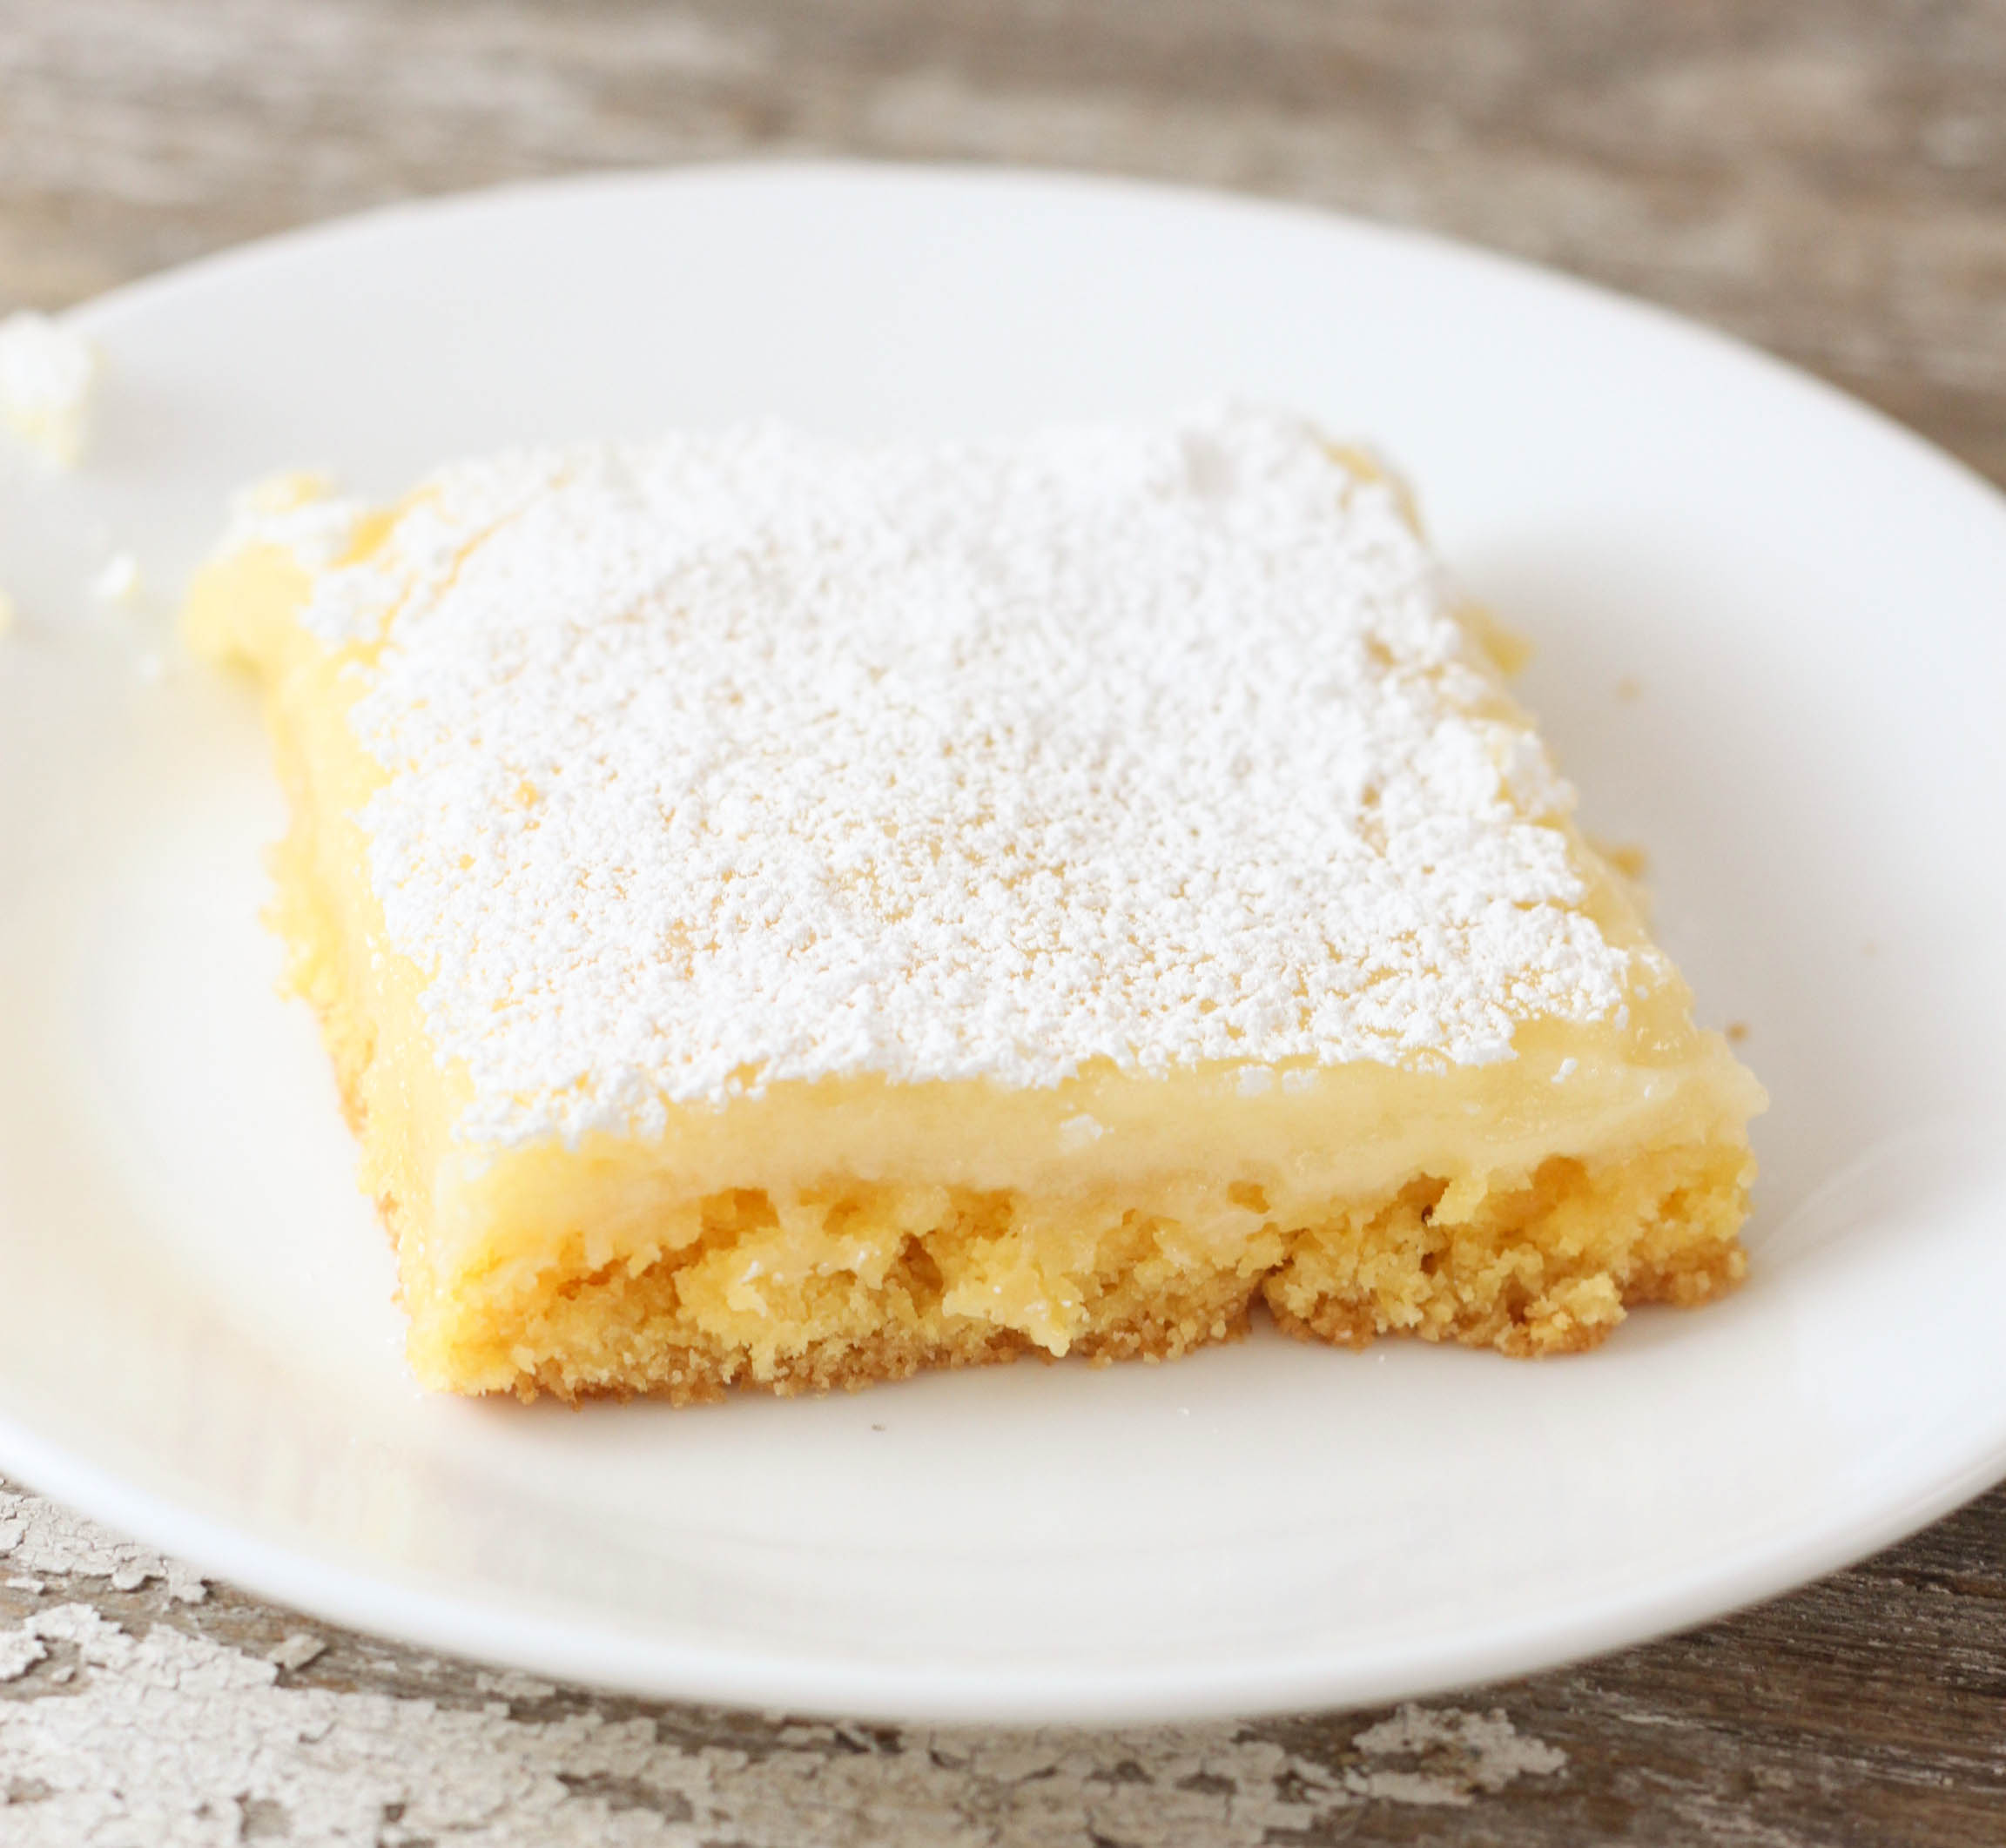 Simple Butter Cake Images : Gooey Butter Cake - The Farmwife Cooks